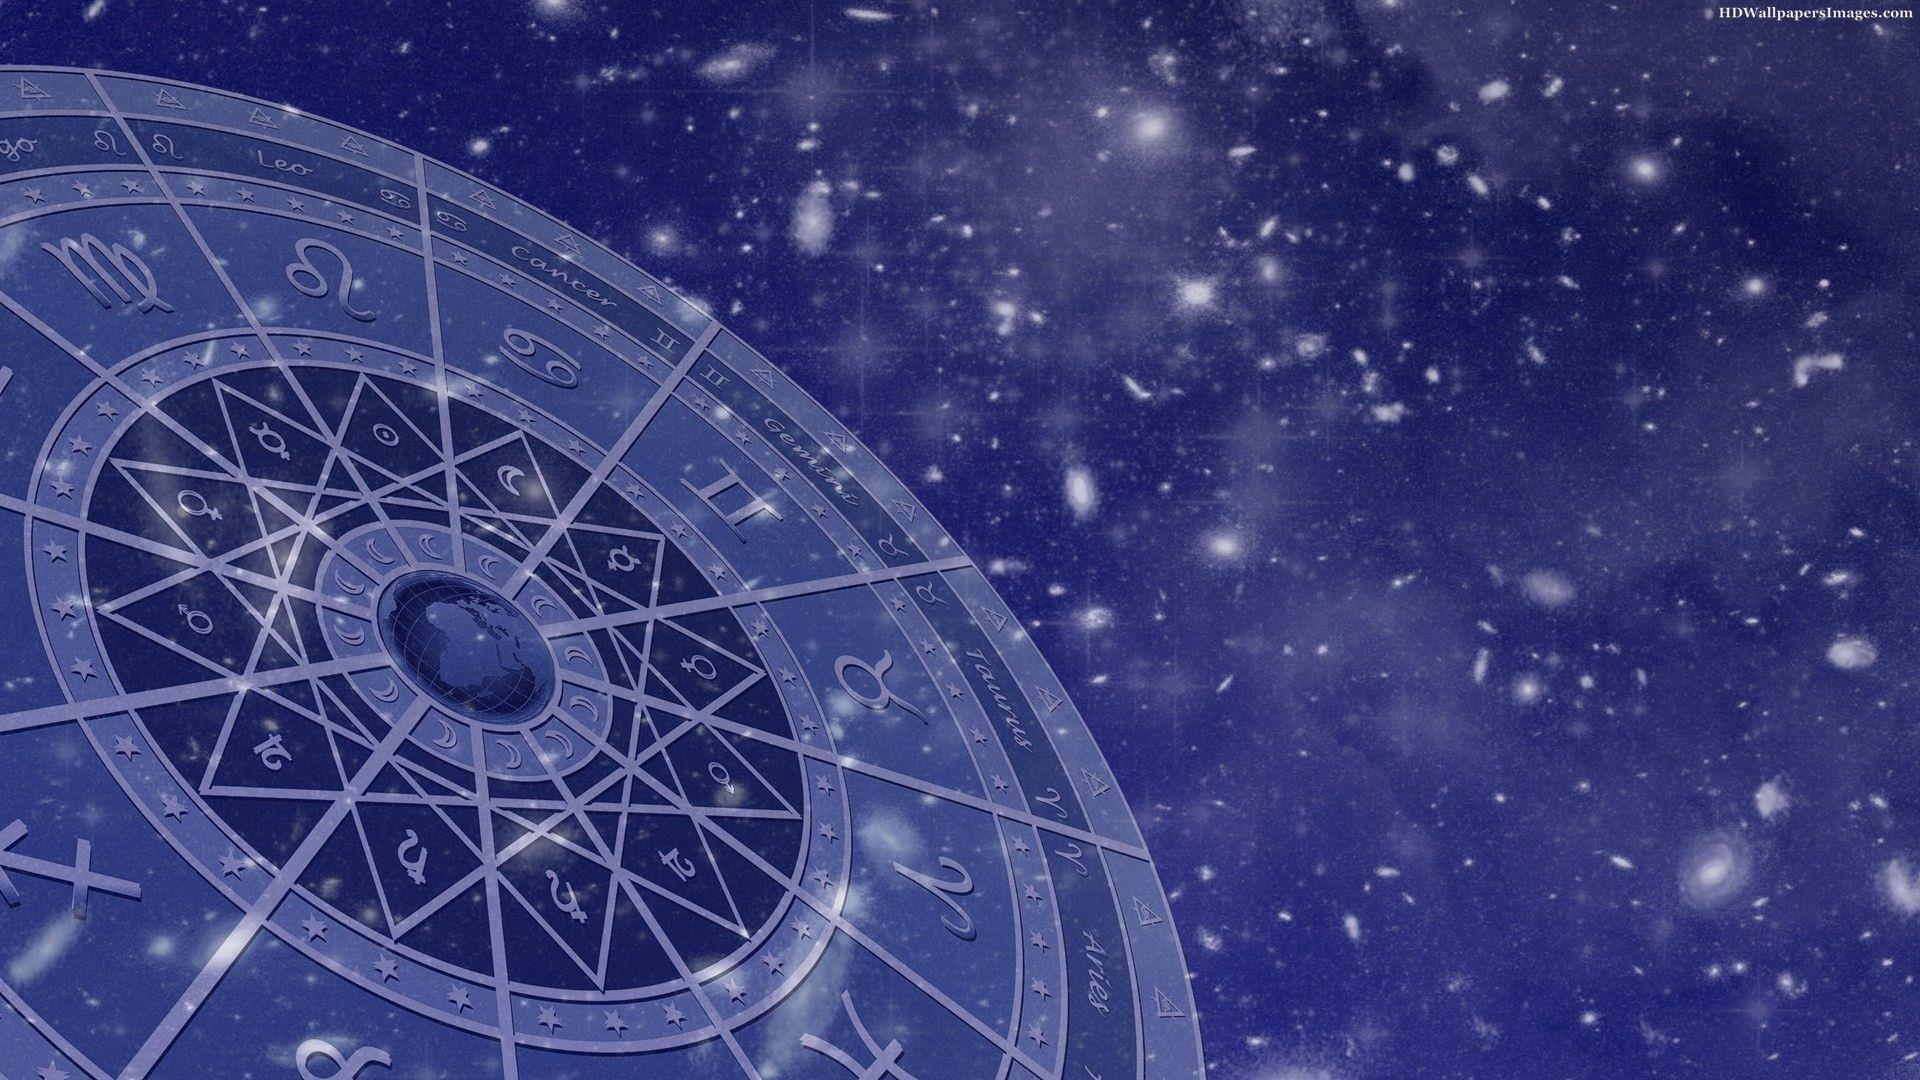 Improve Your Career With Astrology Wallpaper